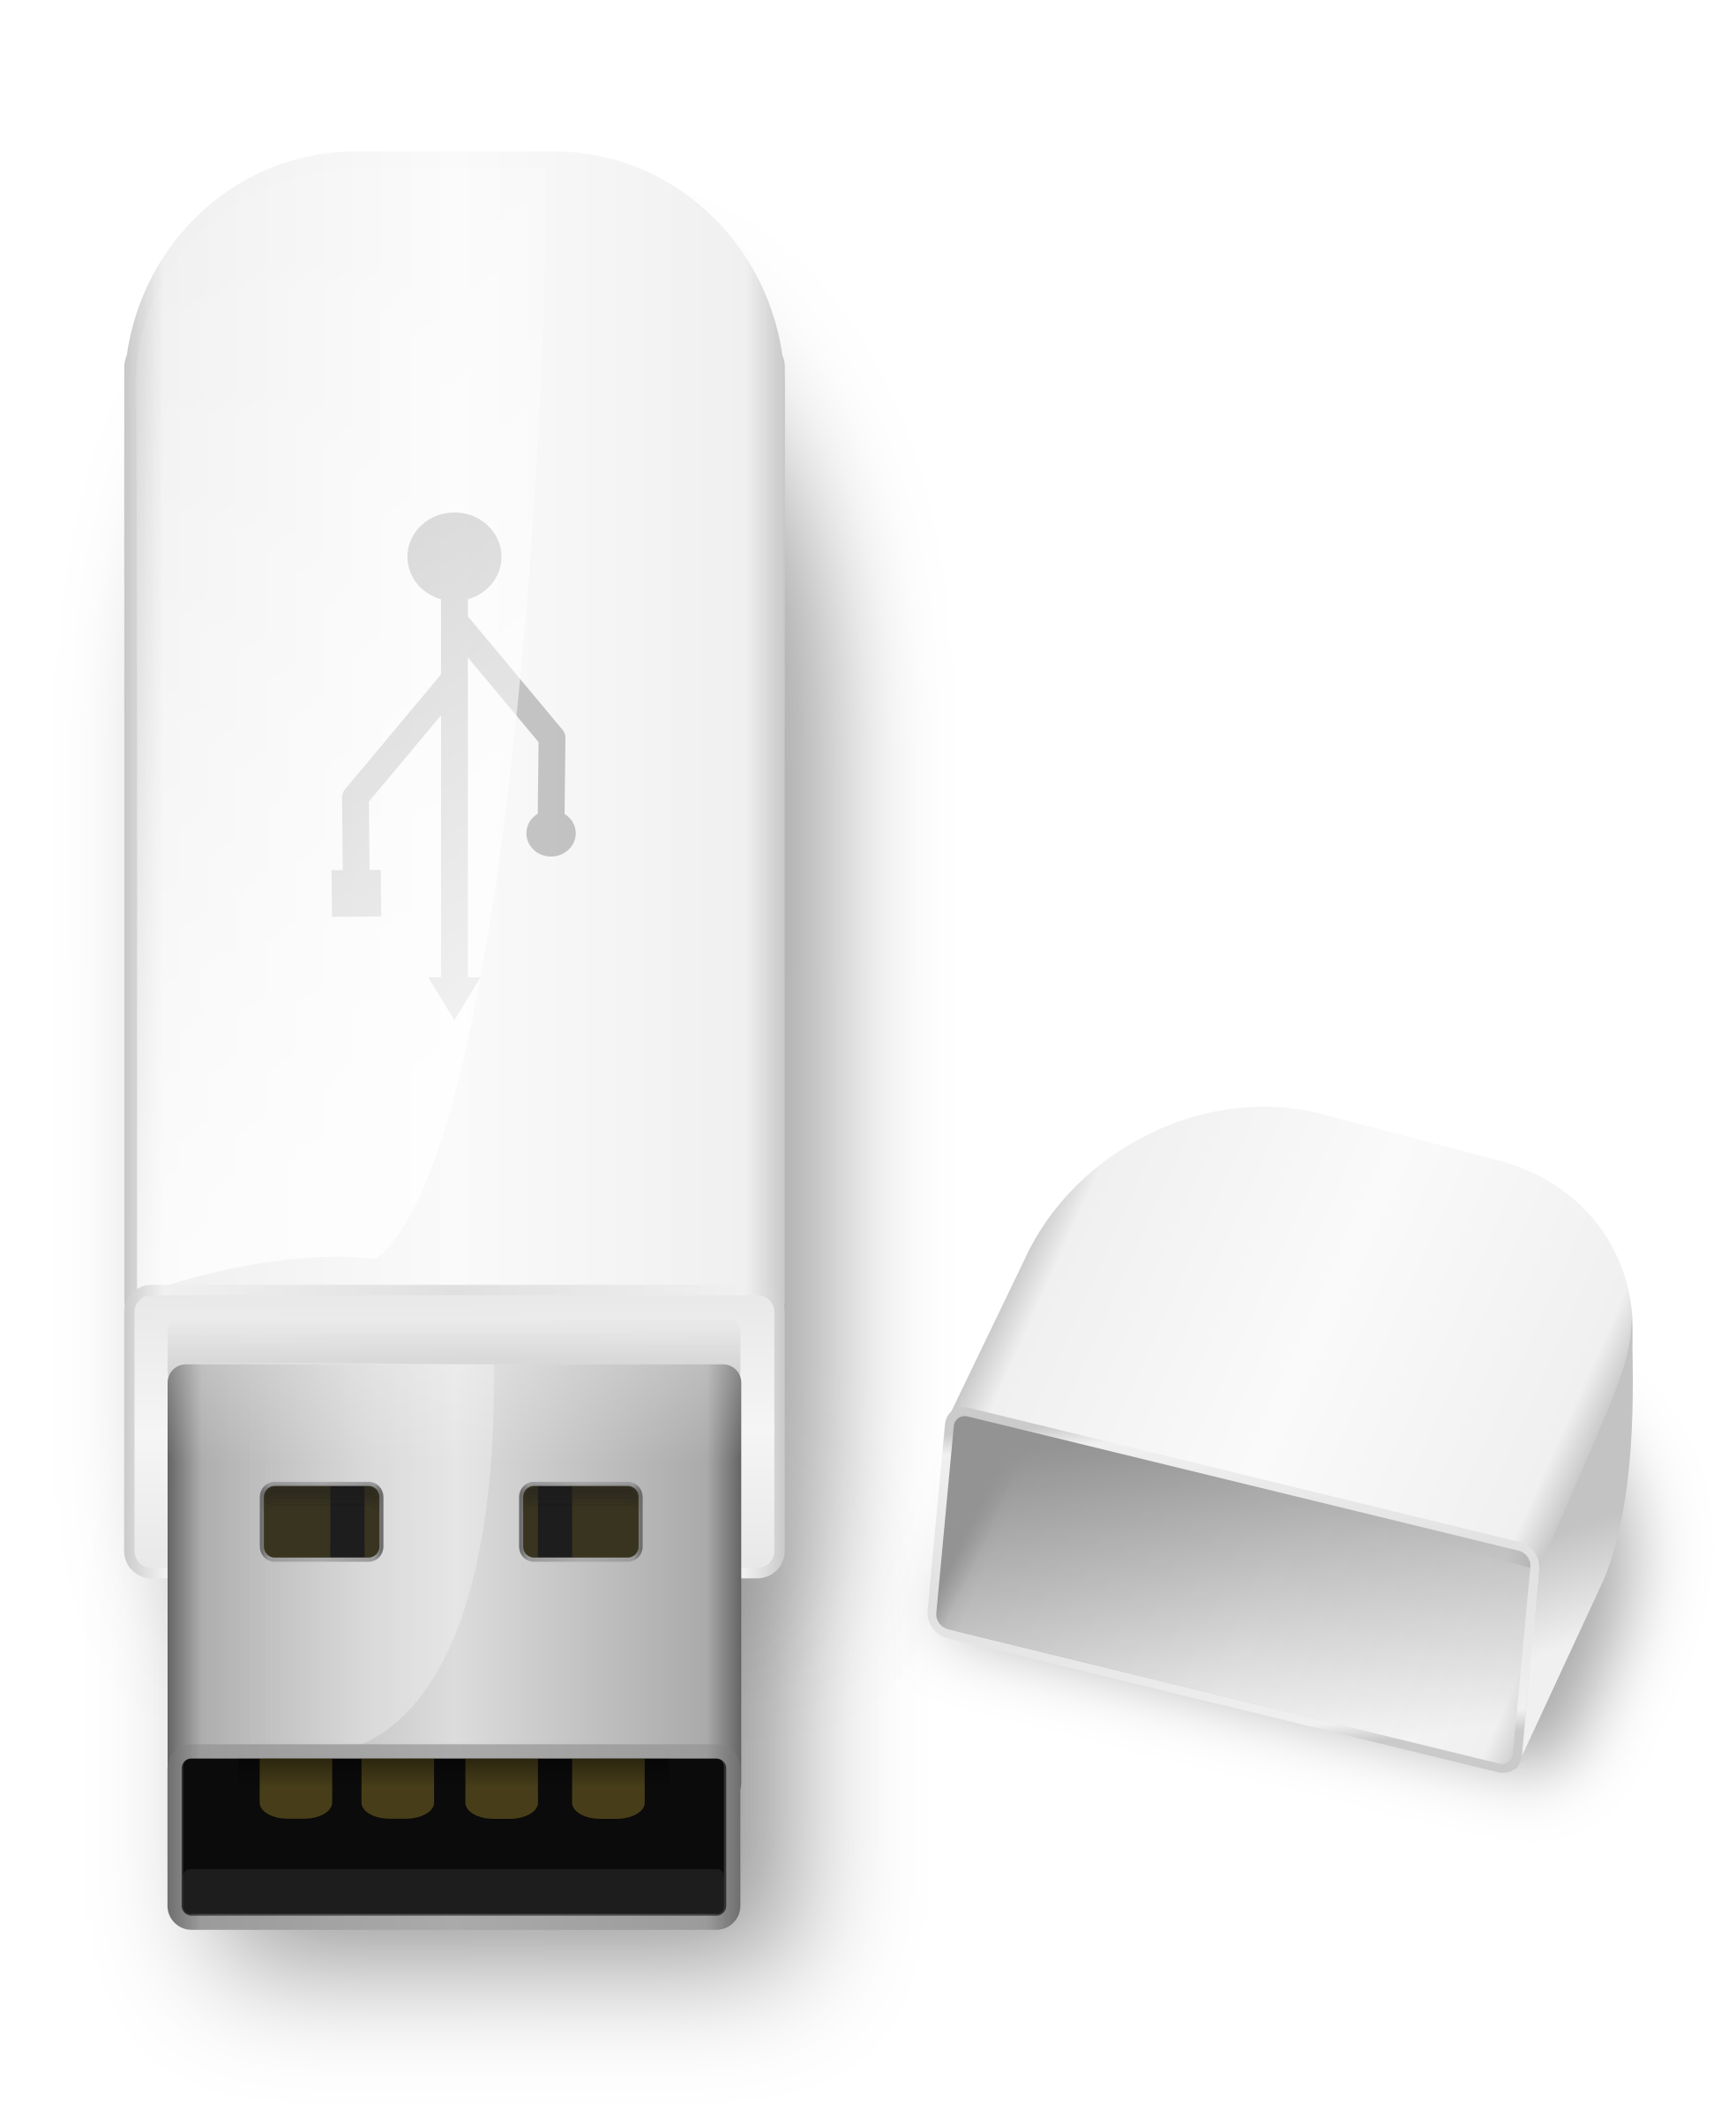 USB flash drive by molumen